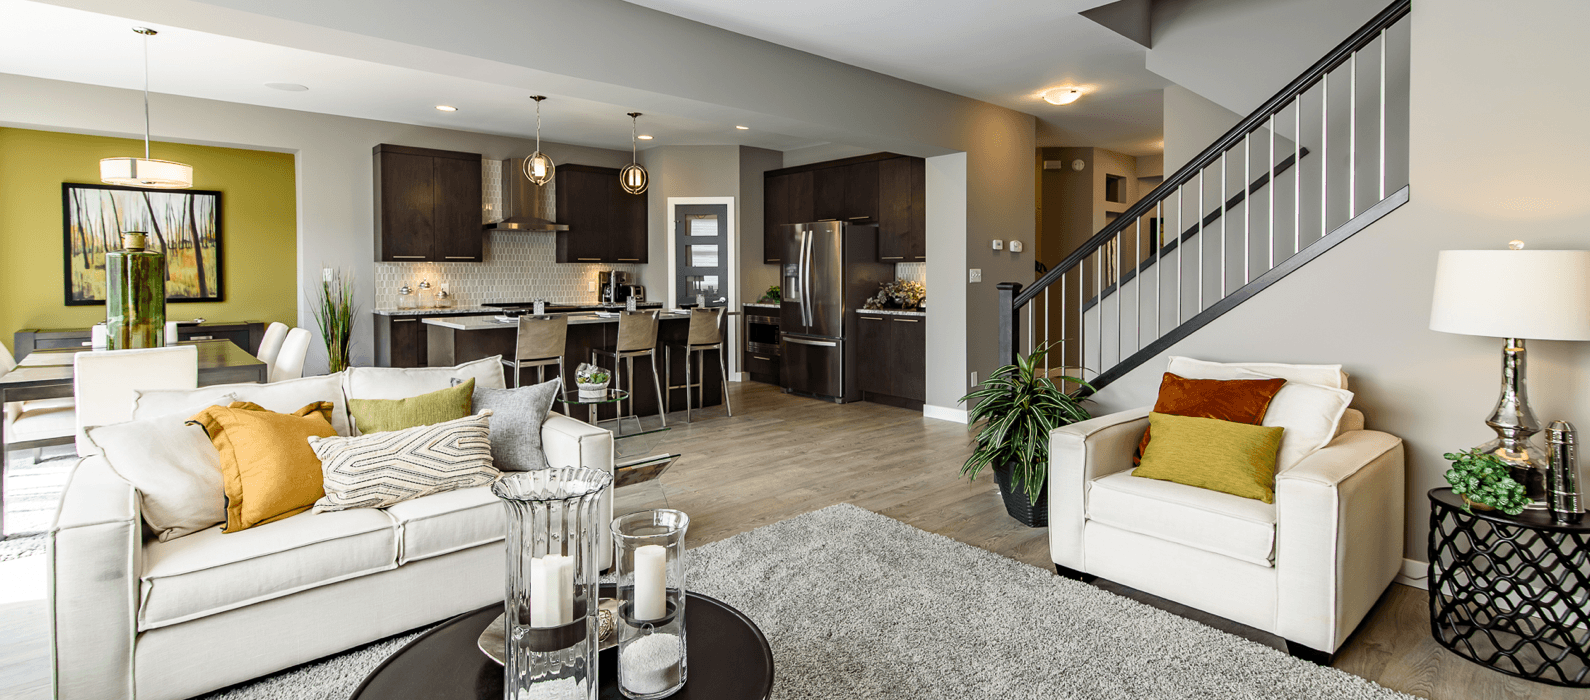 How to Find the Right Floor Plan as a First-Time Home Buyer Featured Image